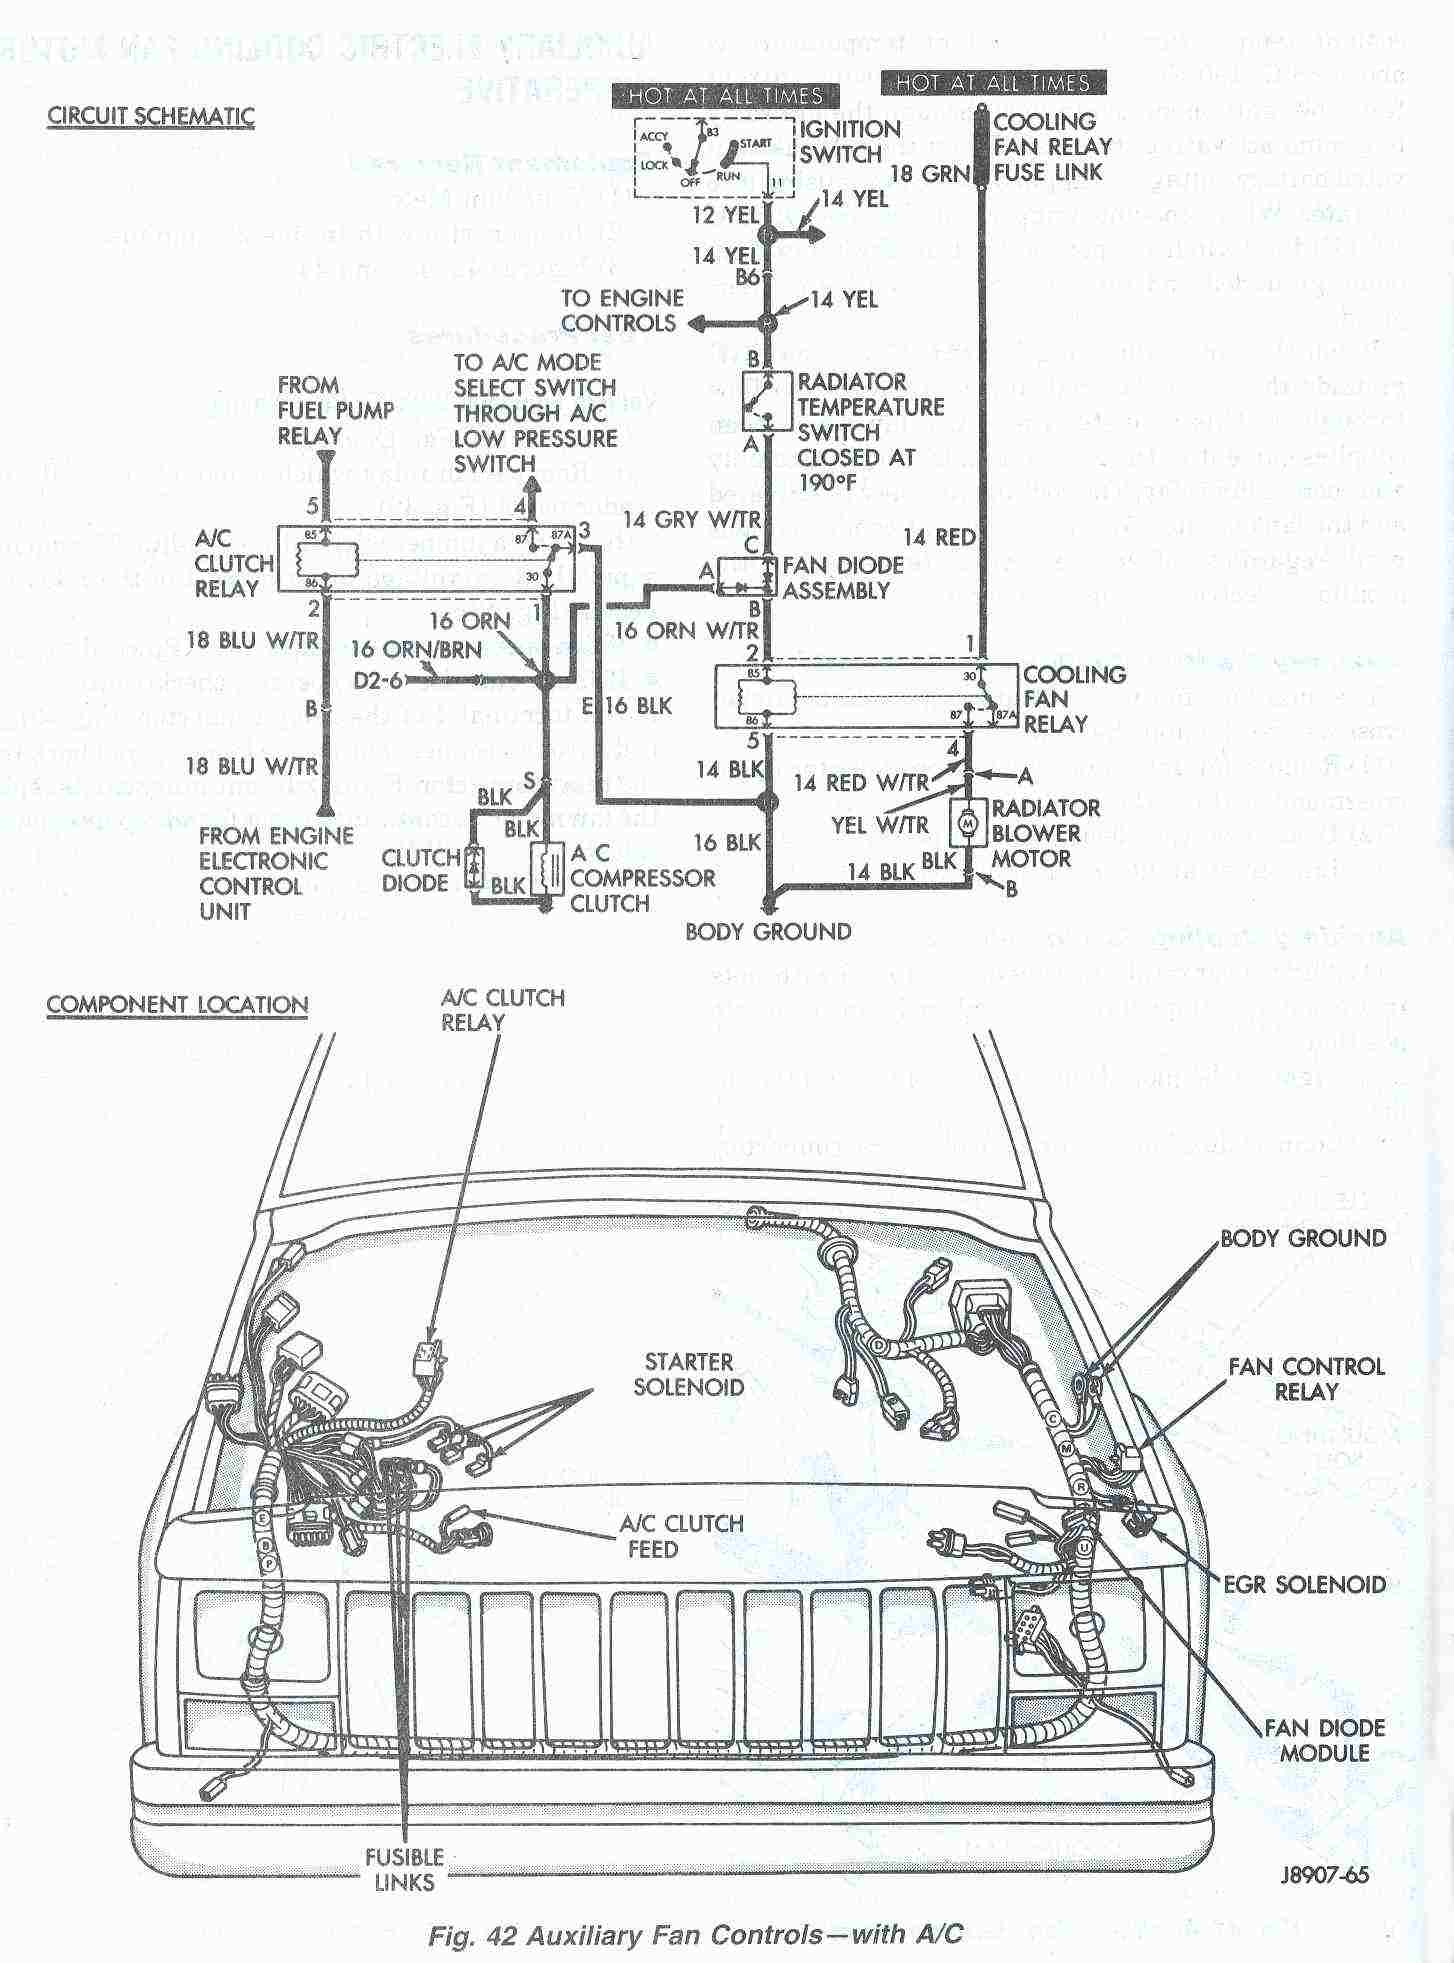 Auxiliary_Fan_Schematic_Fig_42 jeep cherokee cooling system electric cooling fan 1998 jeep cherokee wiring schematic at alyssarenee.co